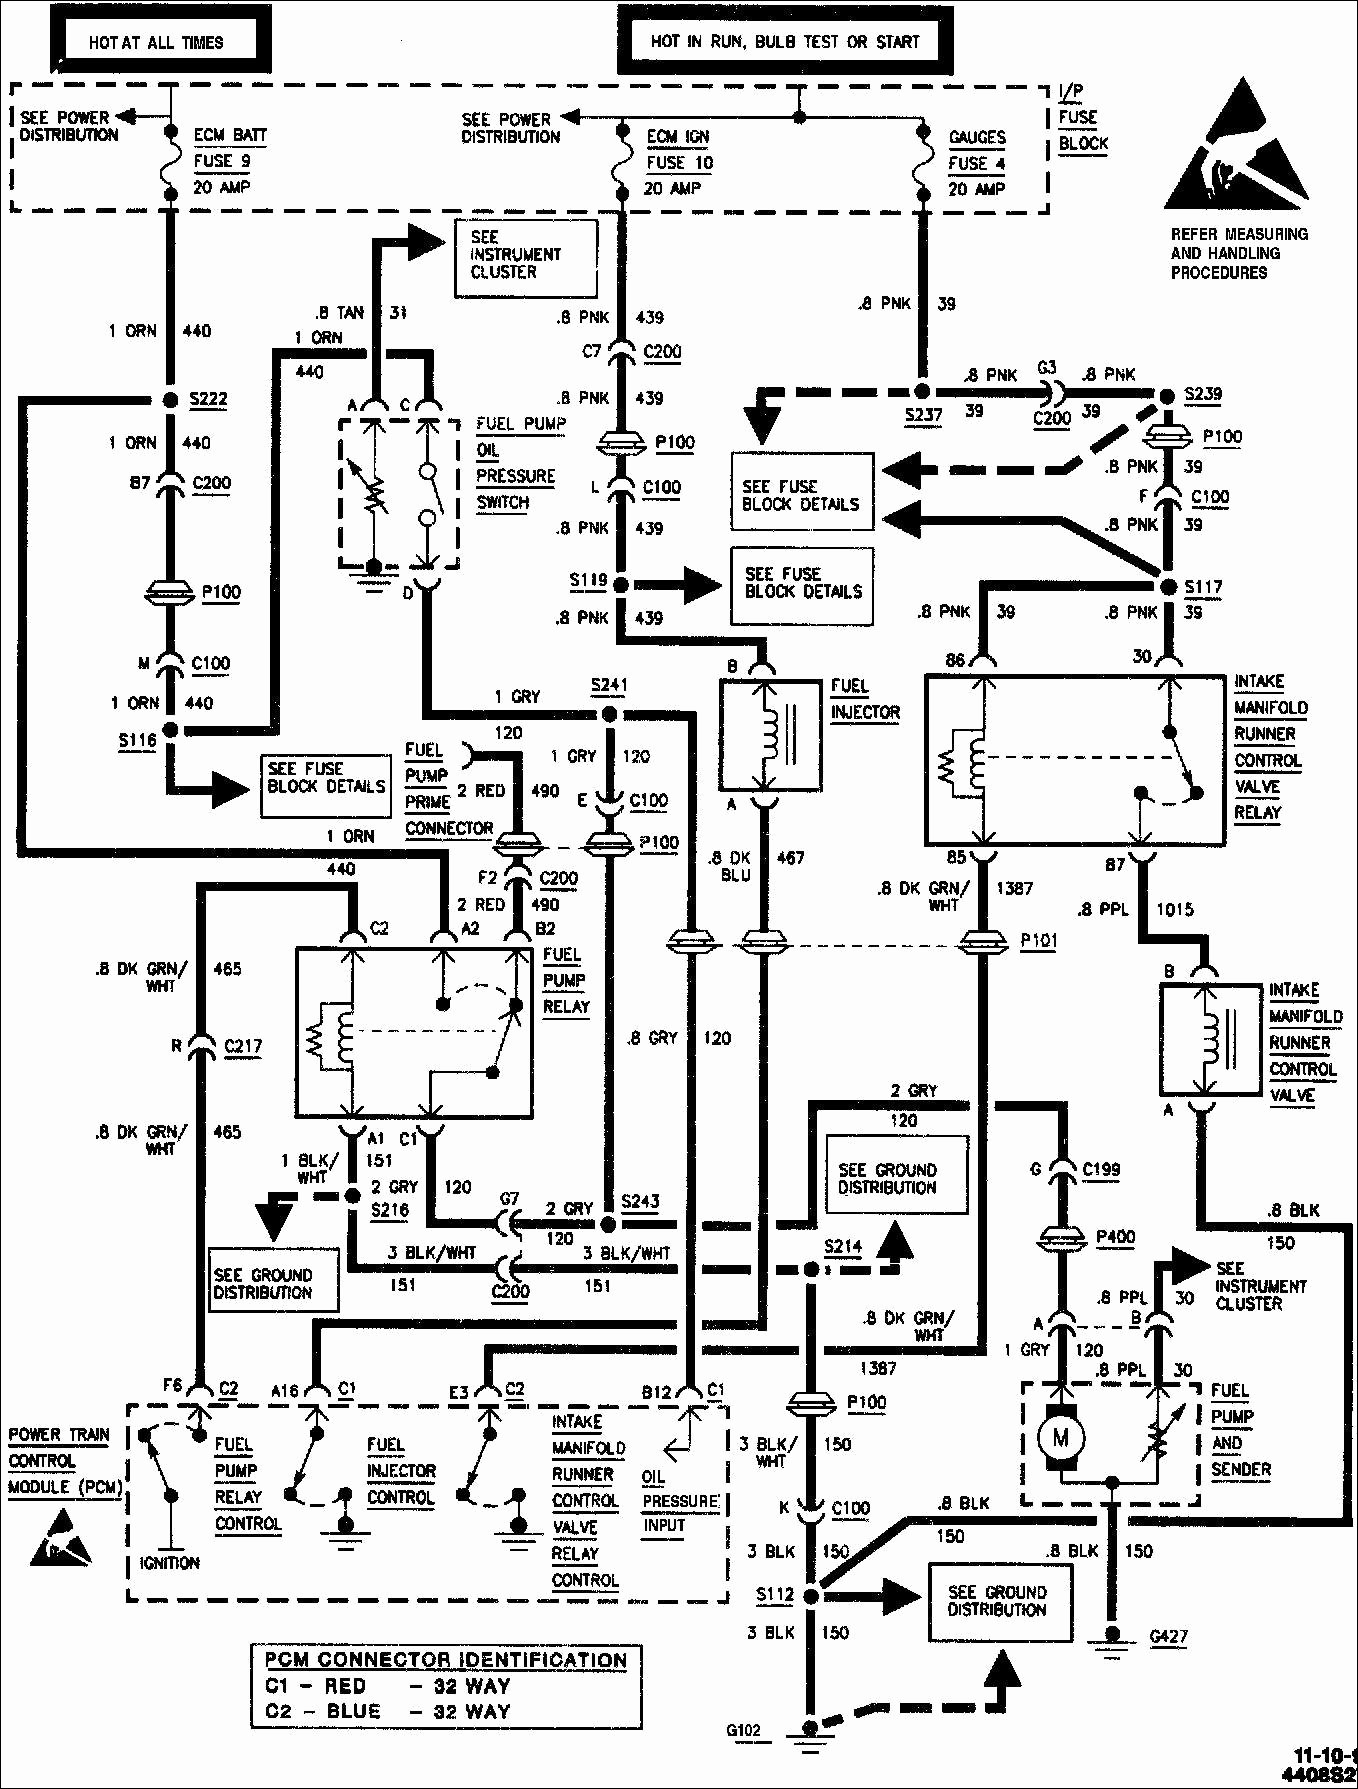 2000 ford explorer wiring diagrams hecho | wiring diagram 2000 ford explorer schematics 2000 ford explorer xlt fuse box diagram #6